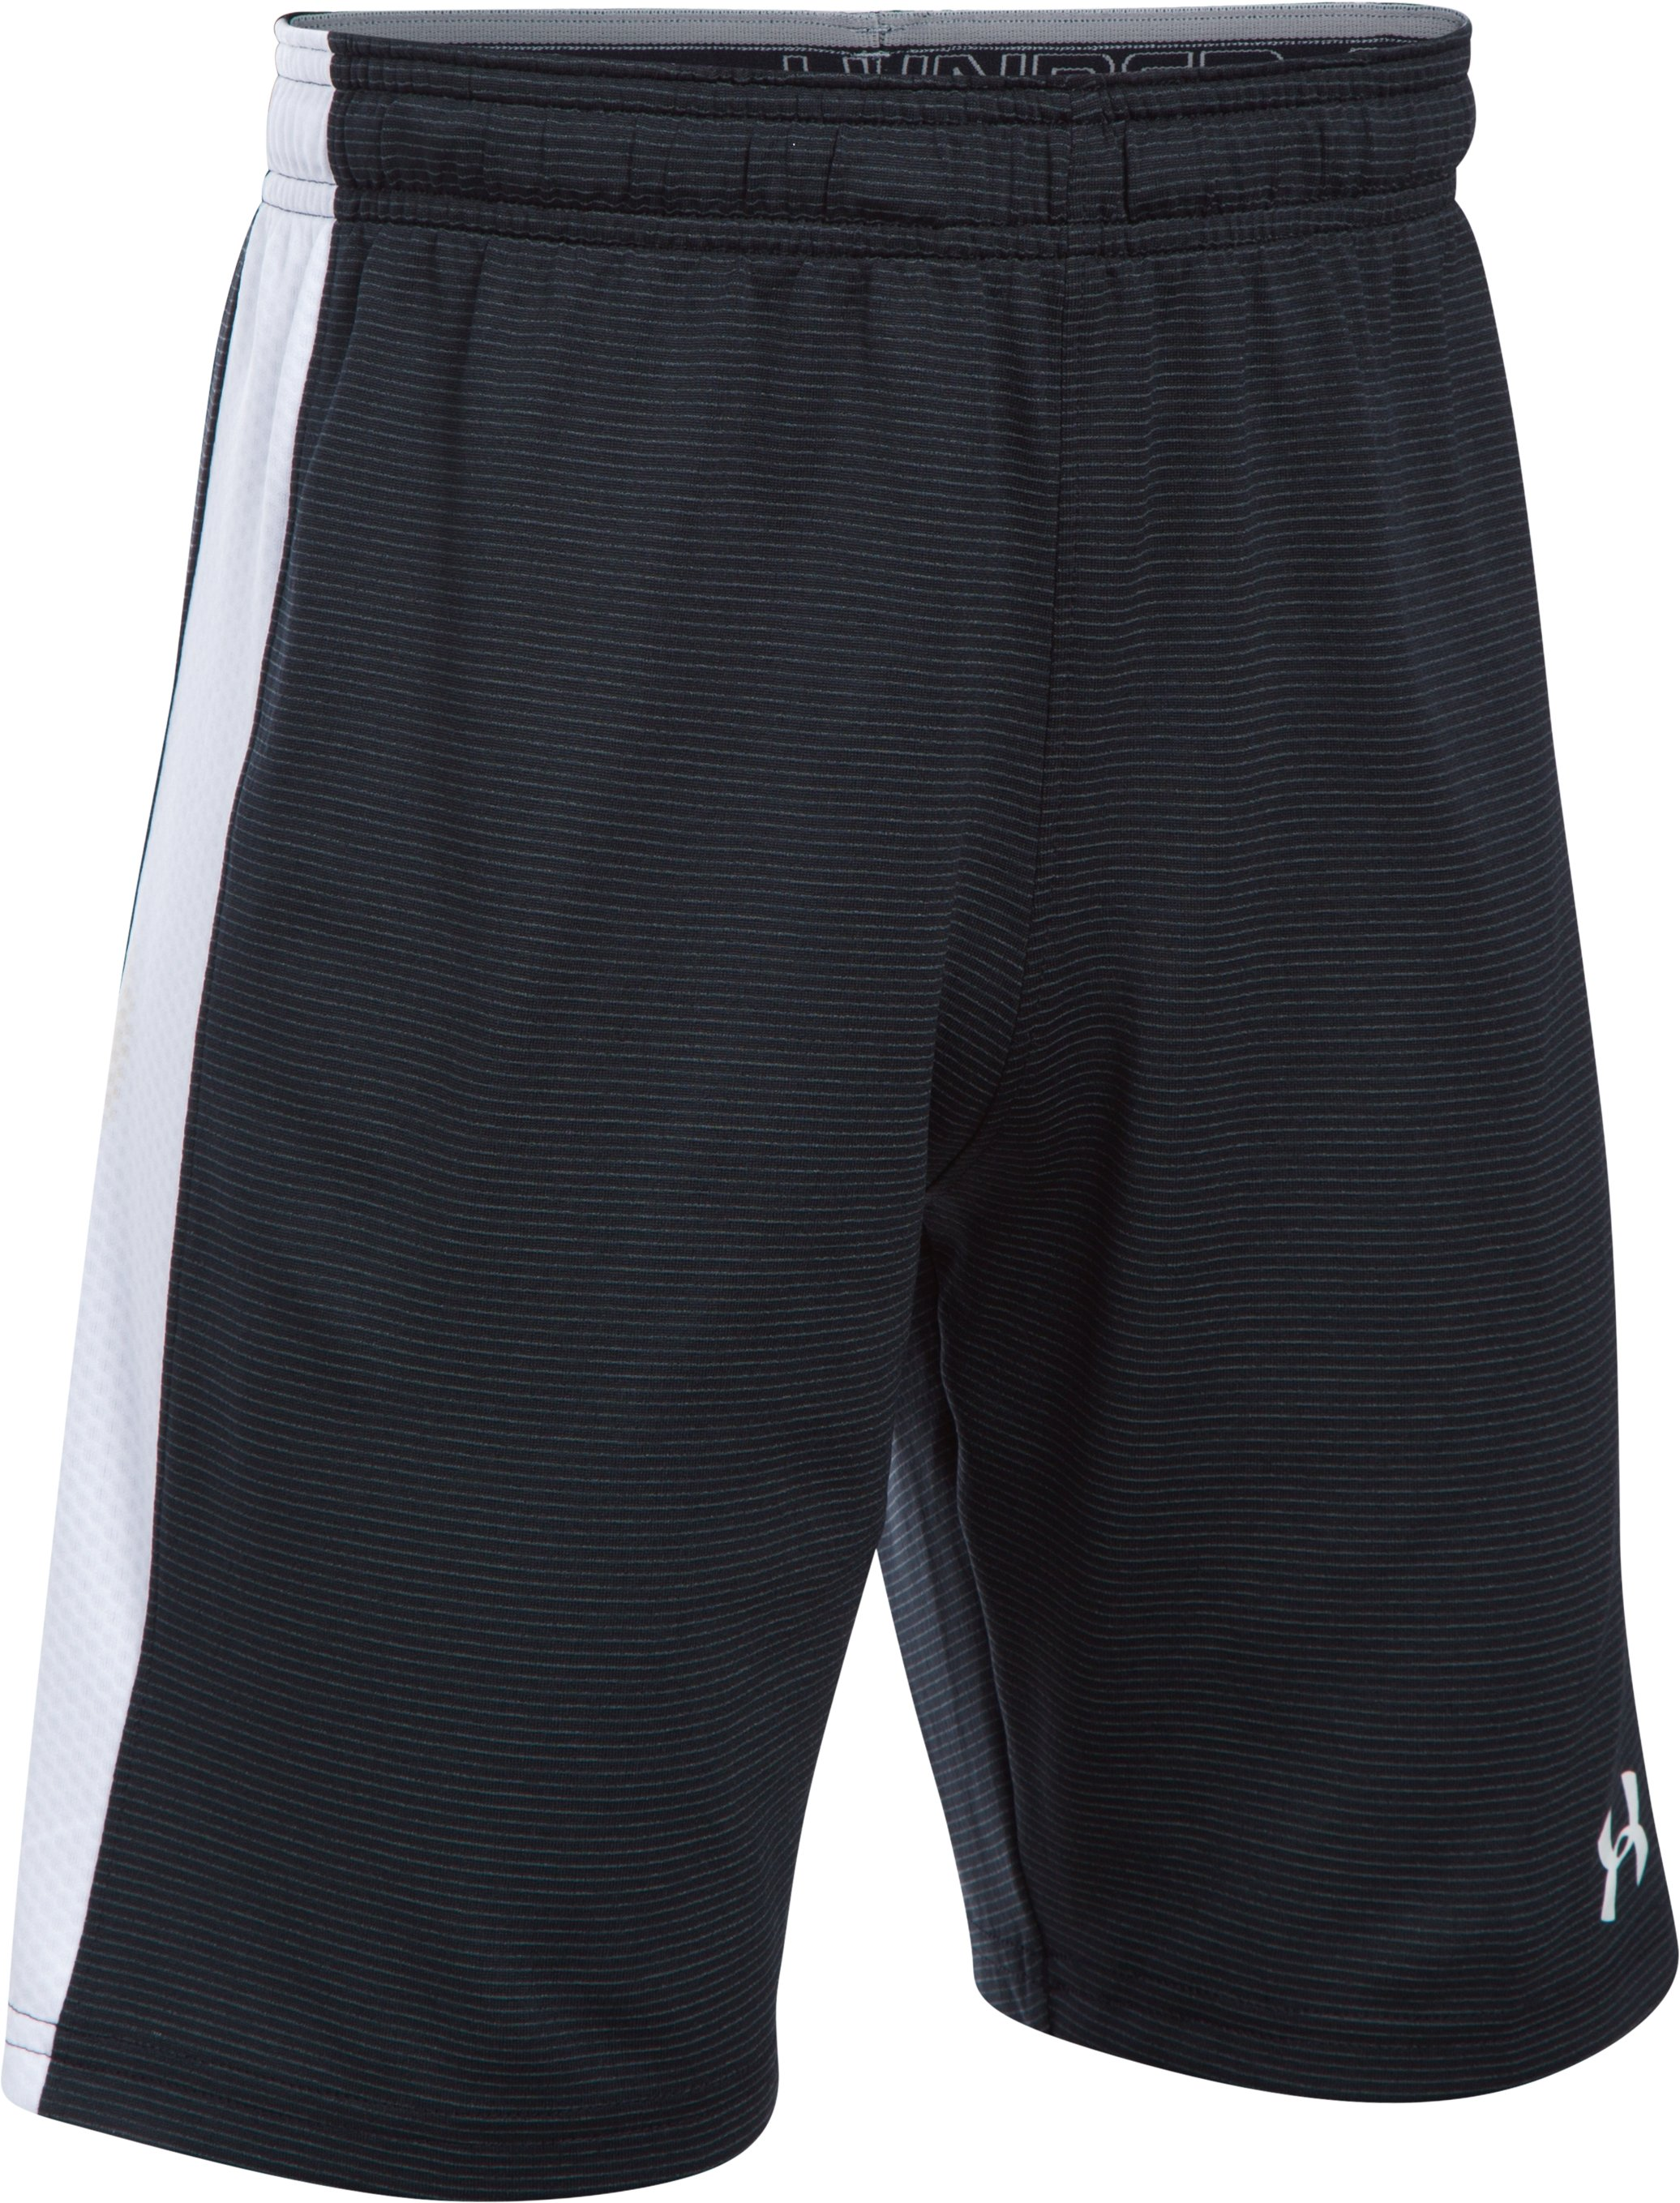 Boys' UA Threadborne Match Shorts, Black